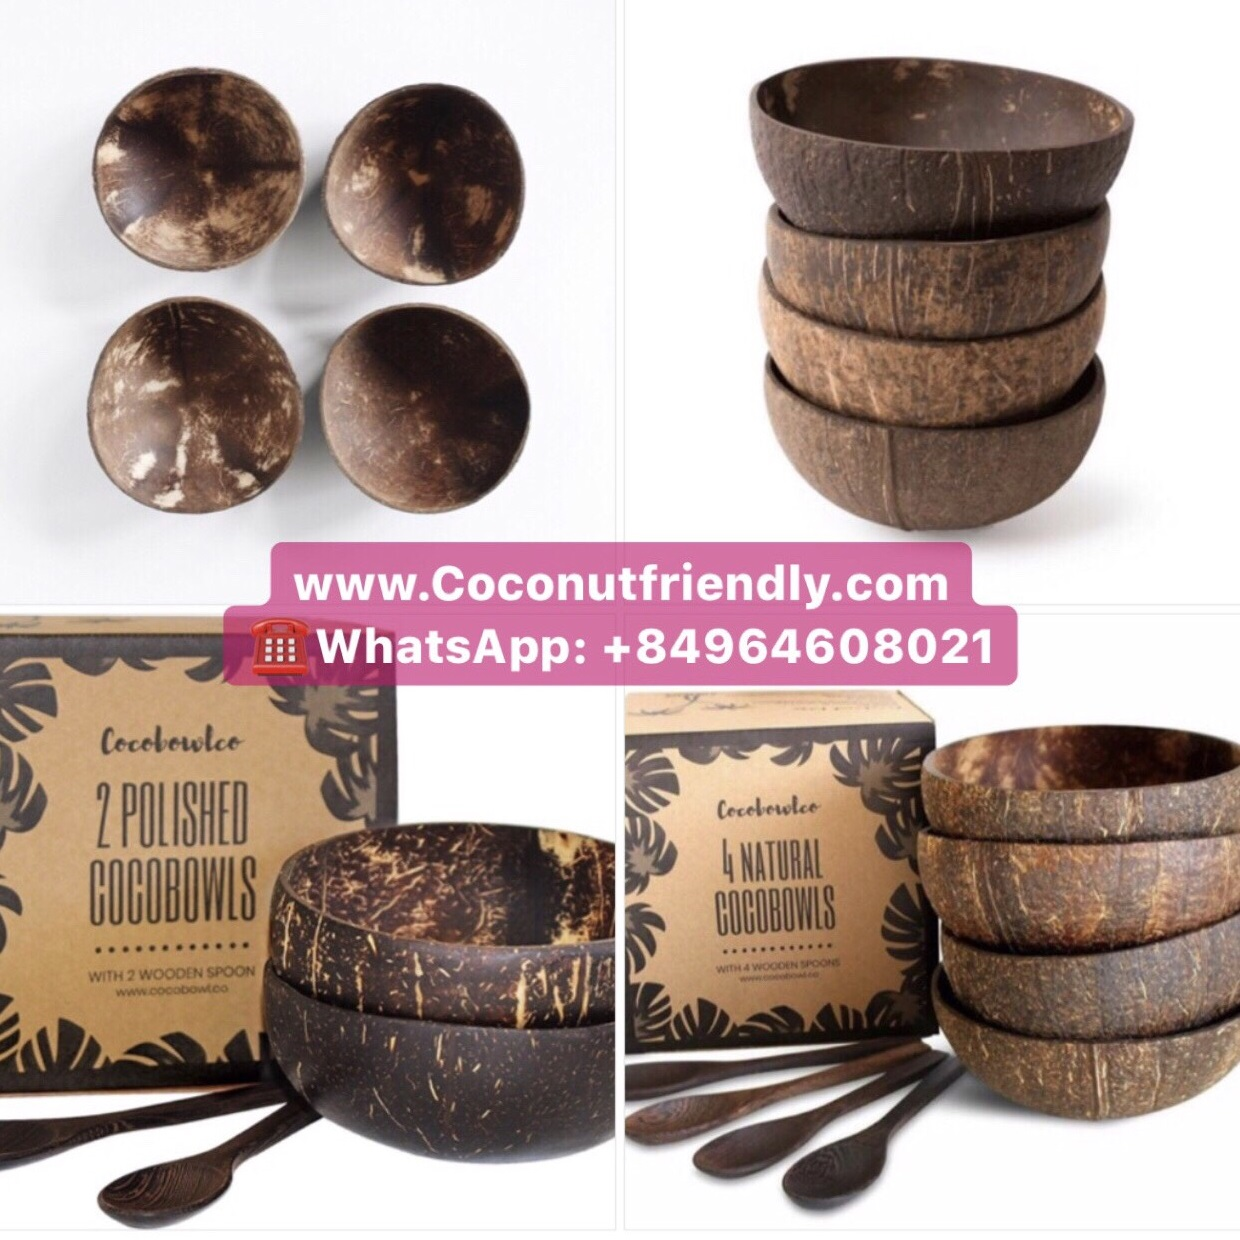 Set Coconut Bowls and Ebony Spoons with High Quality and Hand-Crafted Vietnam